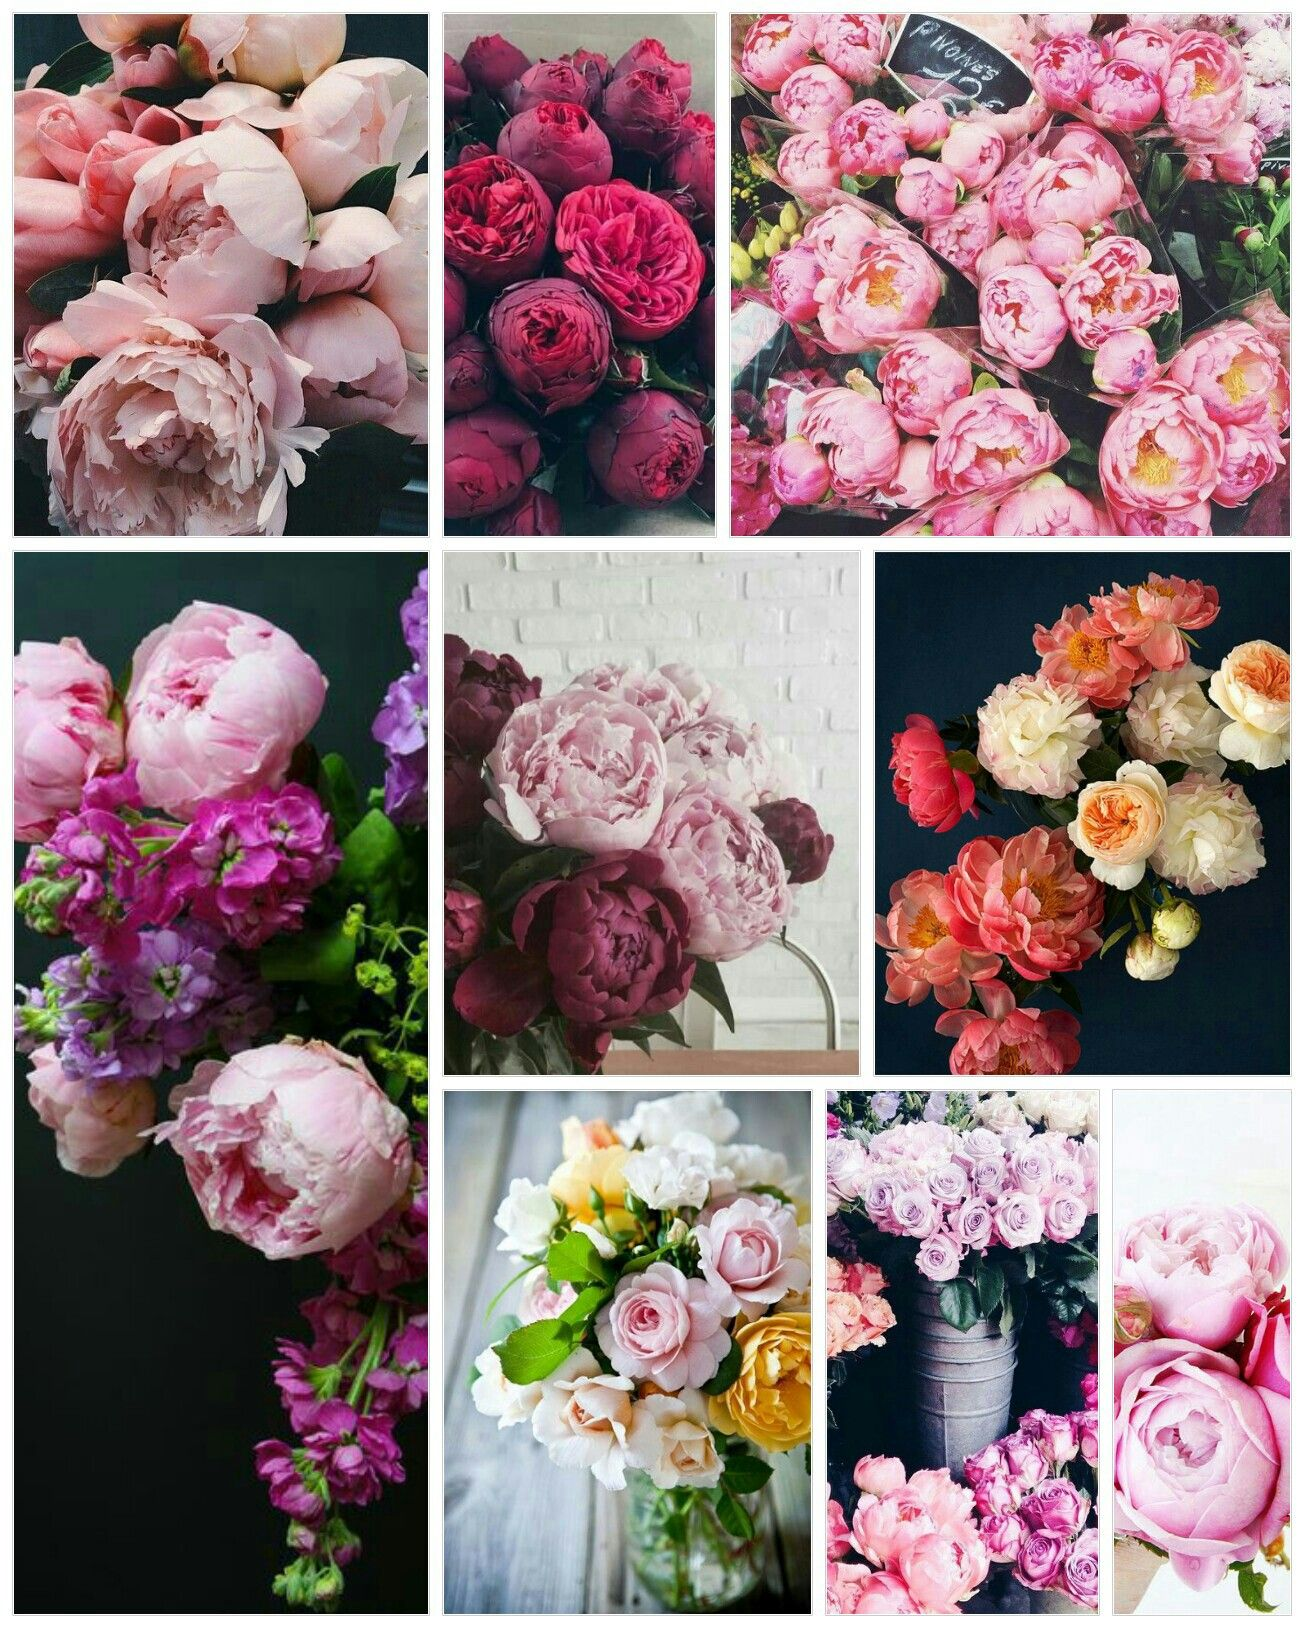 Pin by P. Renee on FLOWERS Flowers, Floral wreath, Floral